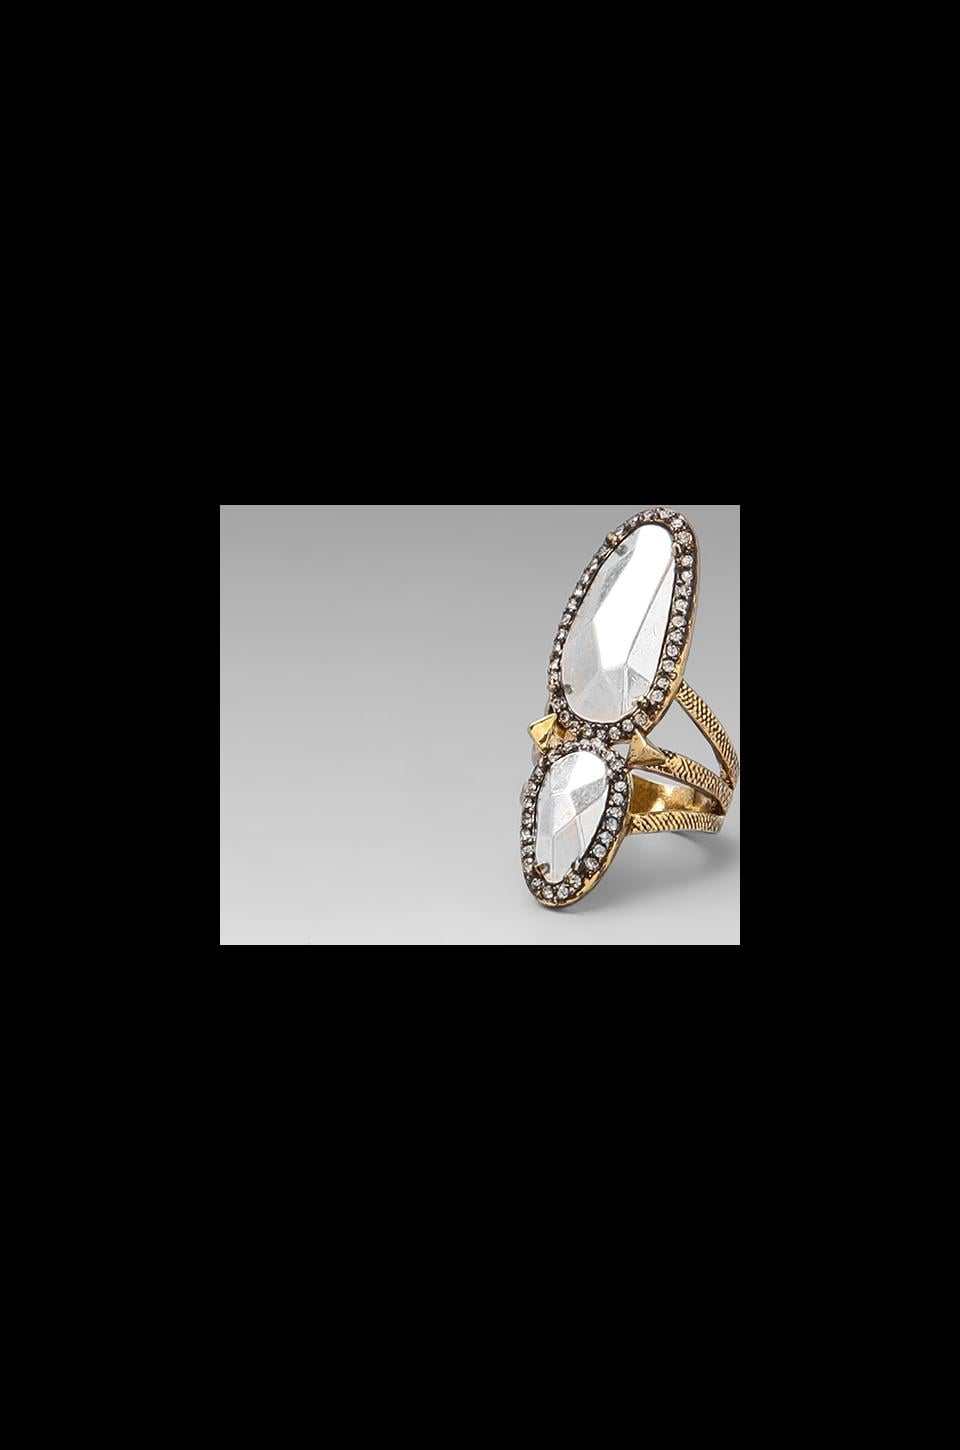 House of Harlow Stacked Rif Pebble Ring Gold/Silver in Two Tone